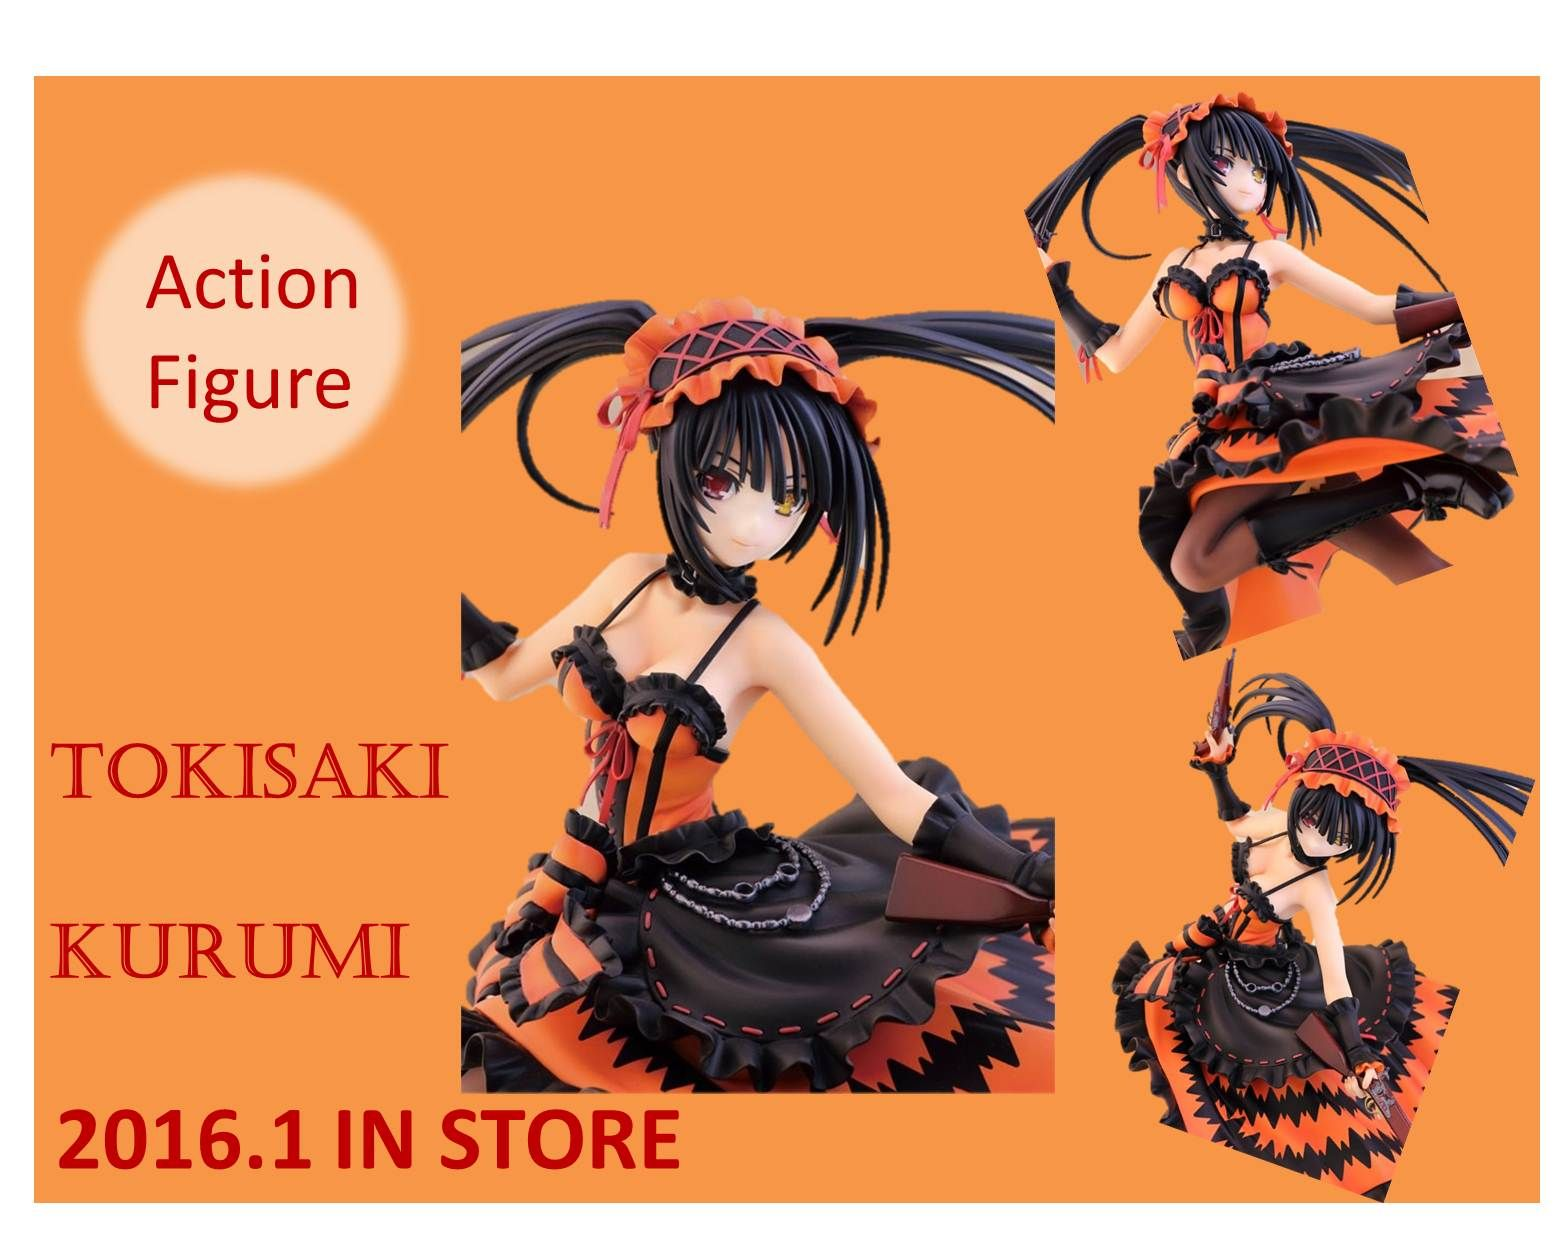 Pin by Elelise 20131552 on Works Anime, Action figures